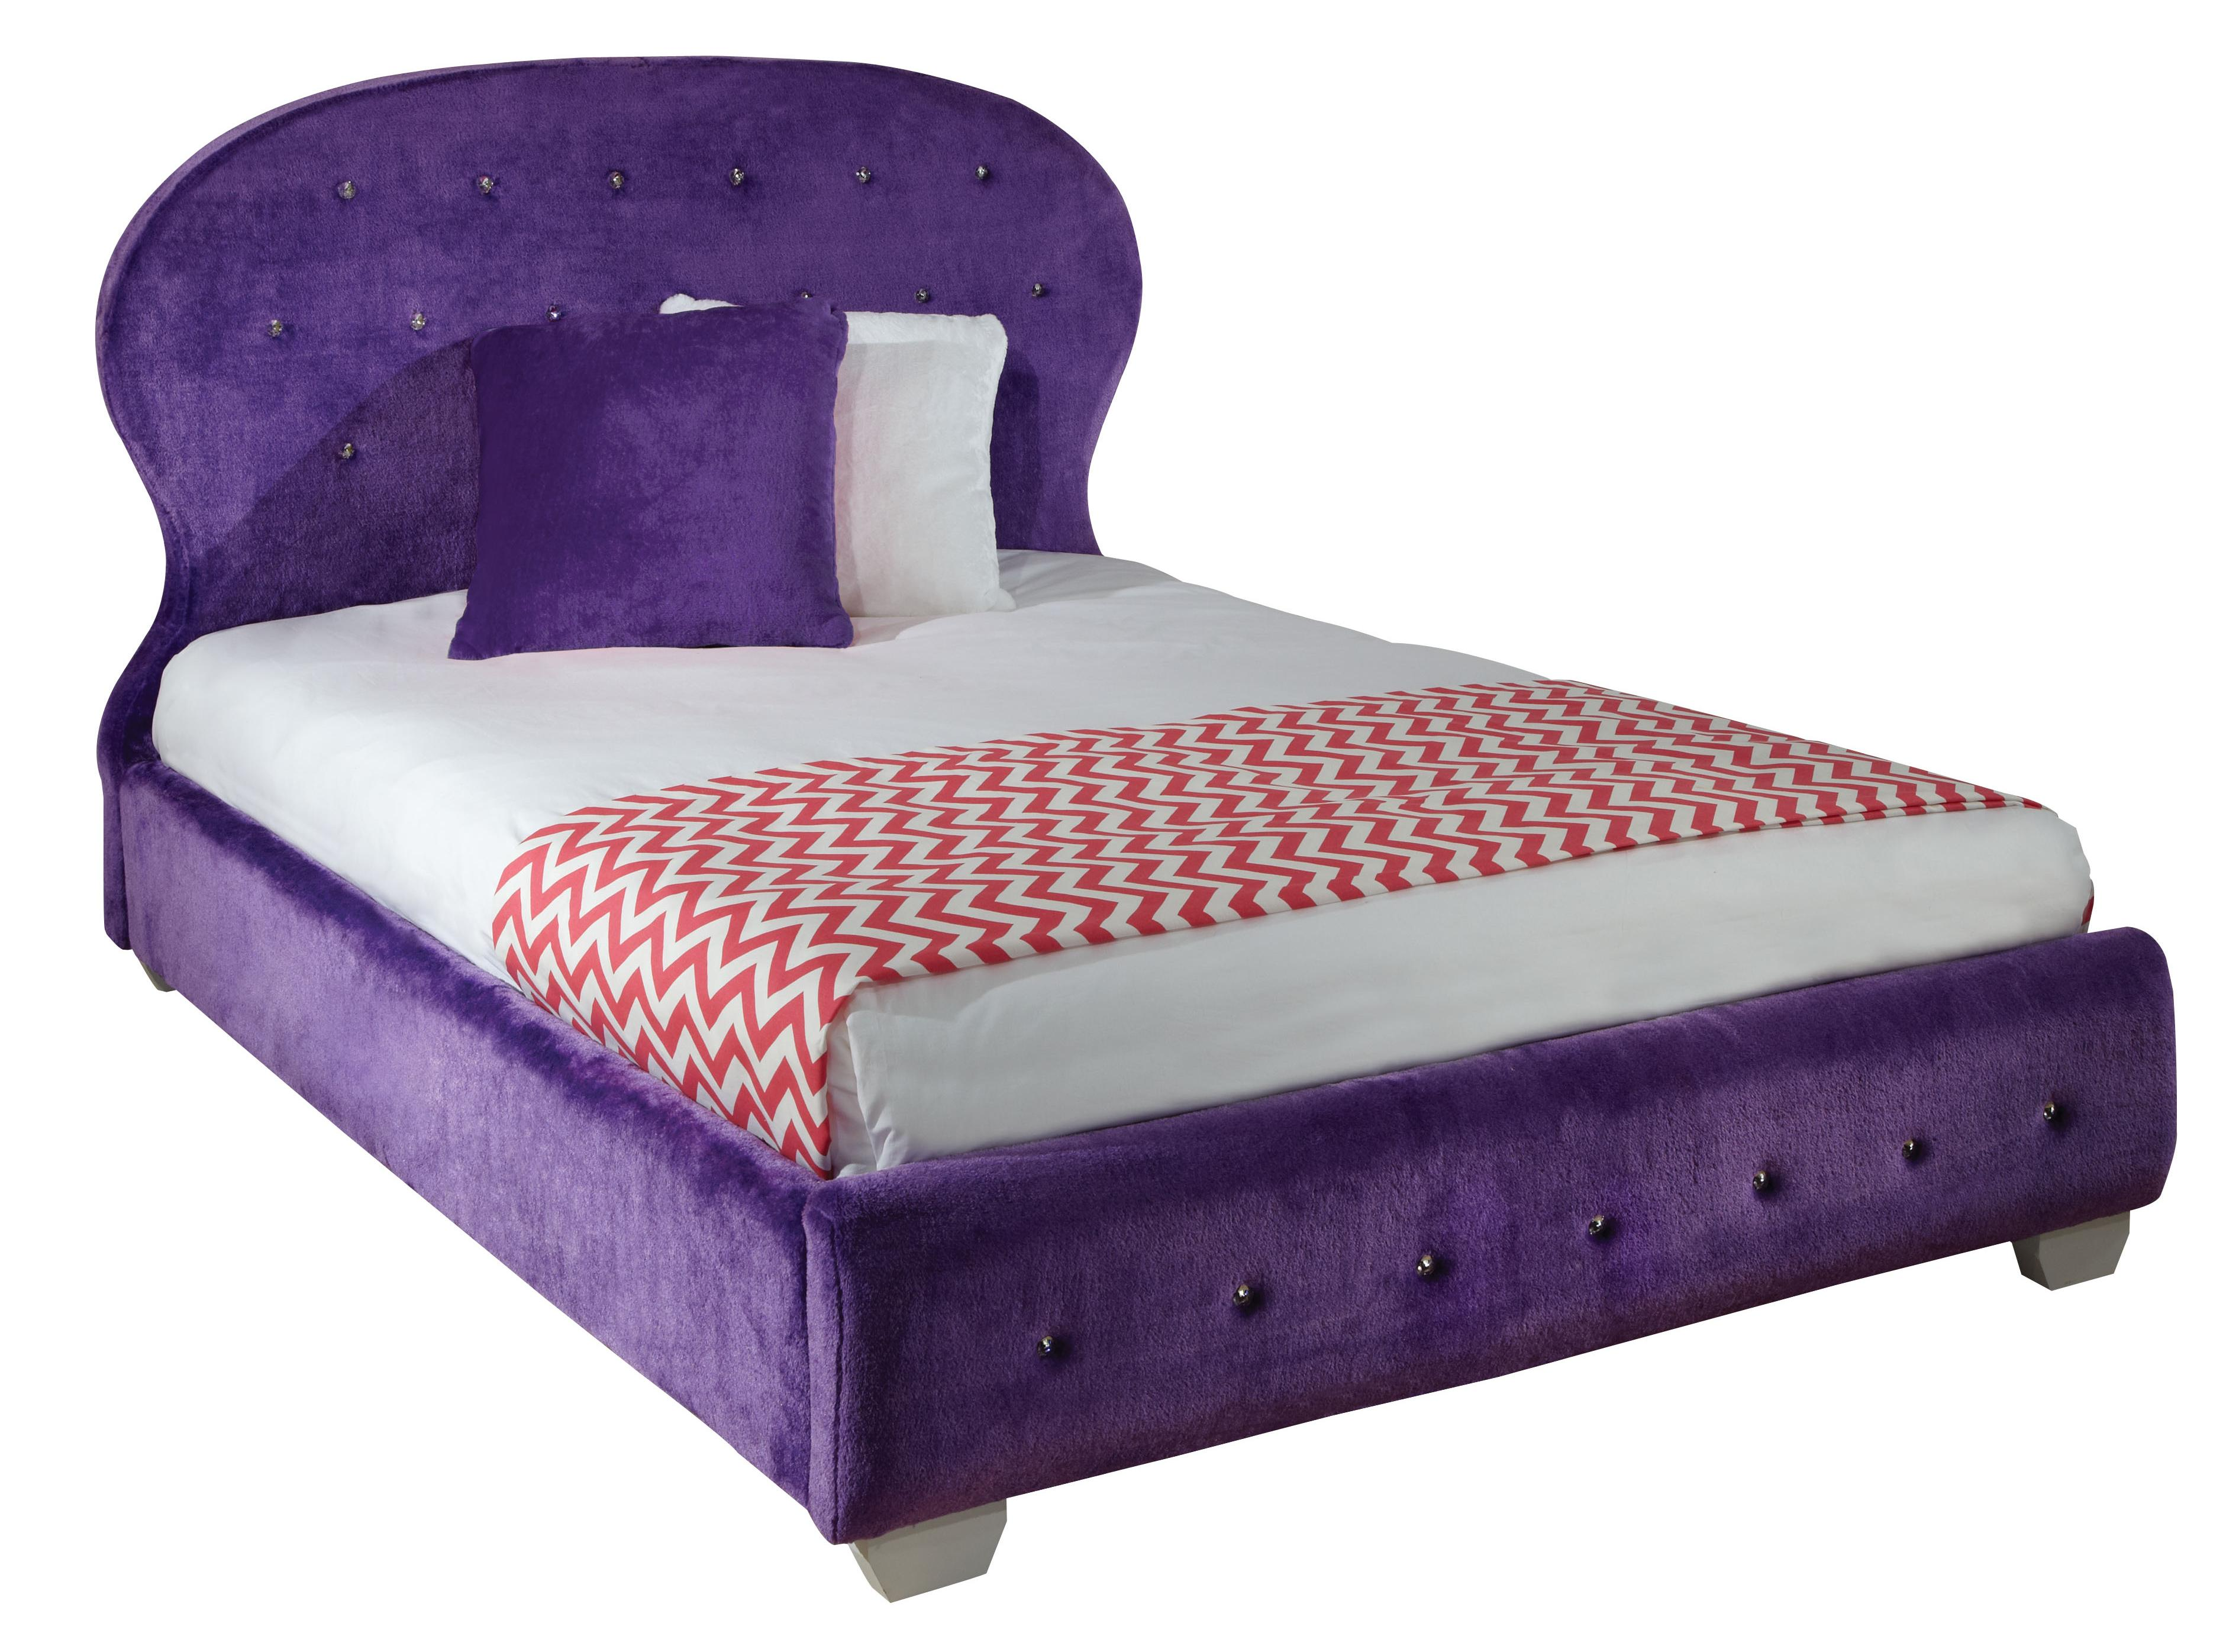 Standard Furniture Marilyn Twin Upholstered Bed - Item Number: 94371+72